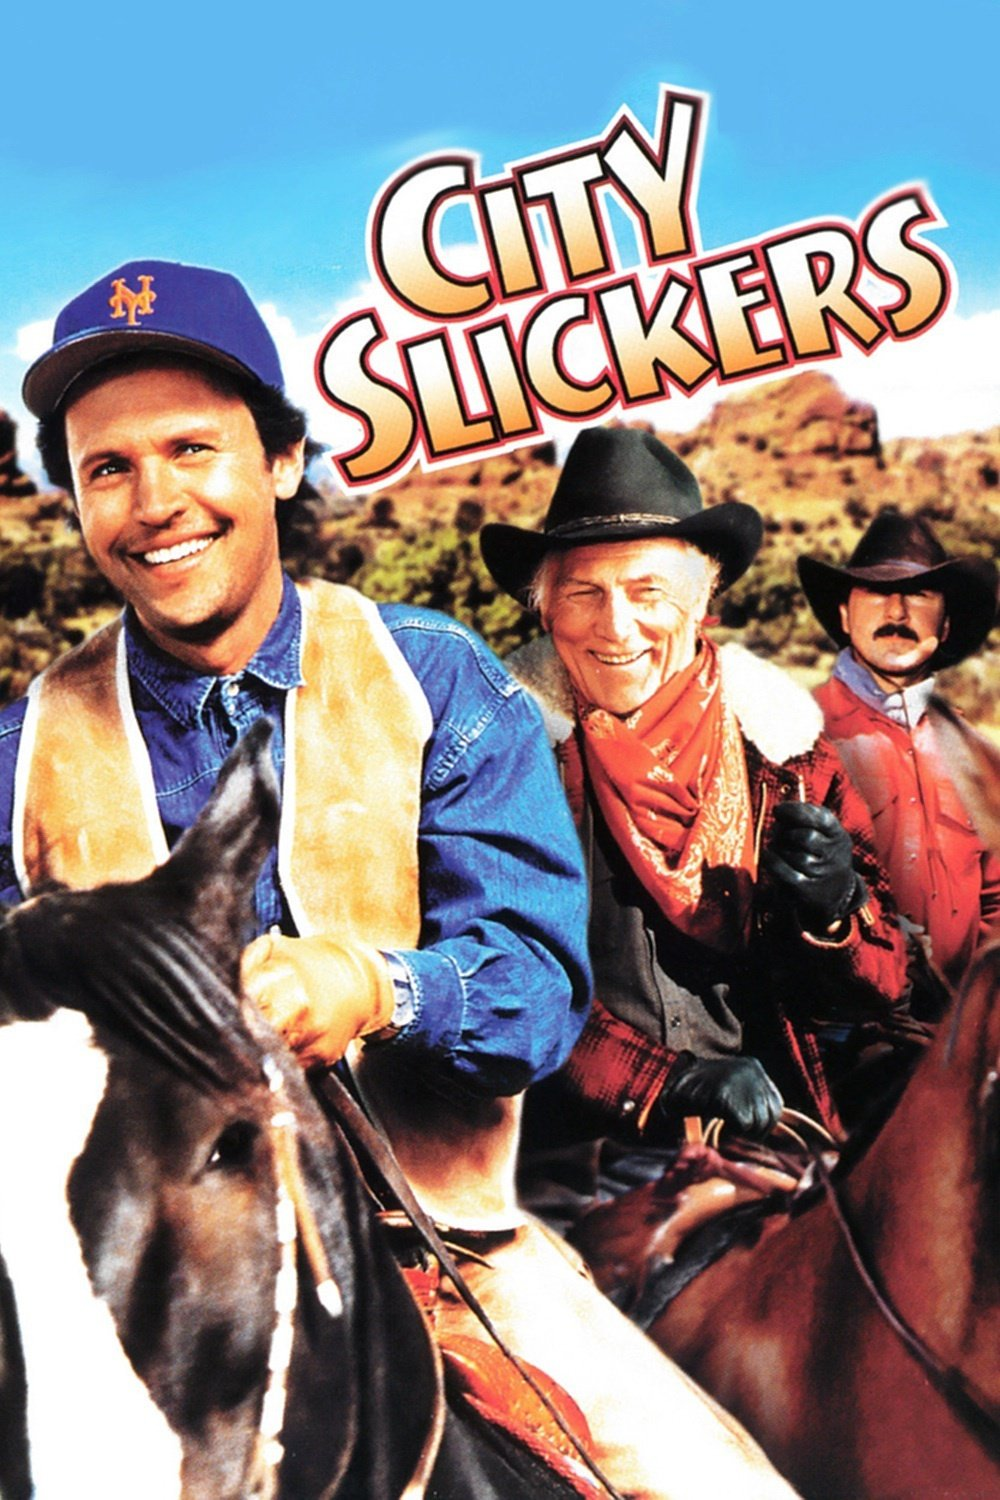 Waiching S Movie Thoughts More Retro Review City Slickers 1991